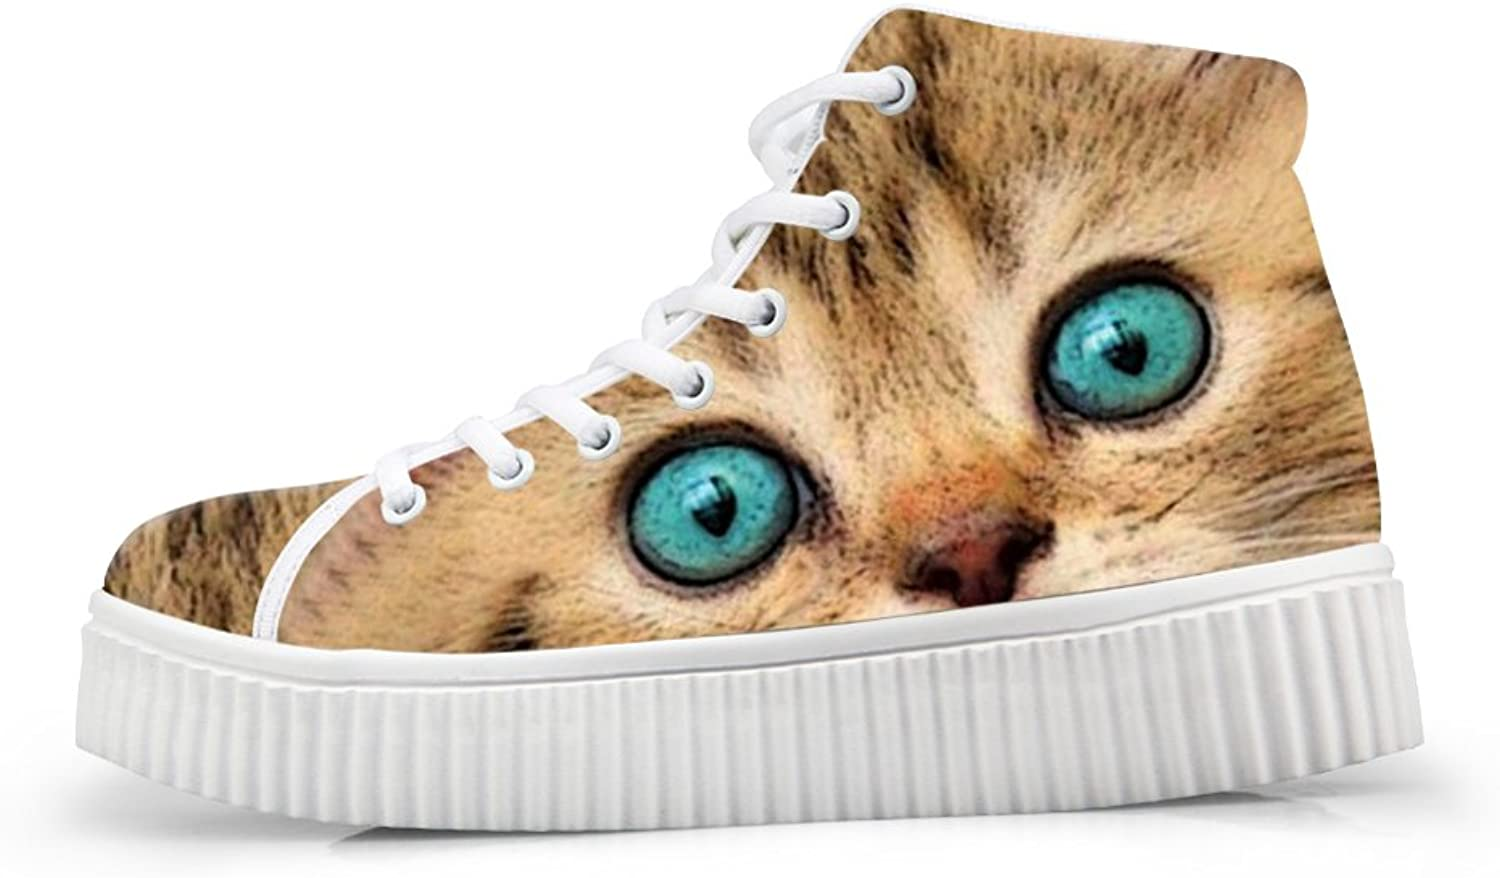 HUGS IDEA Fashion Teal color Eye shoes Casual Cat Face Sneakers with Heels Footwear US11